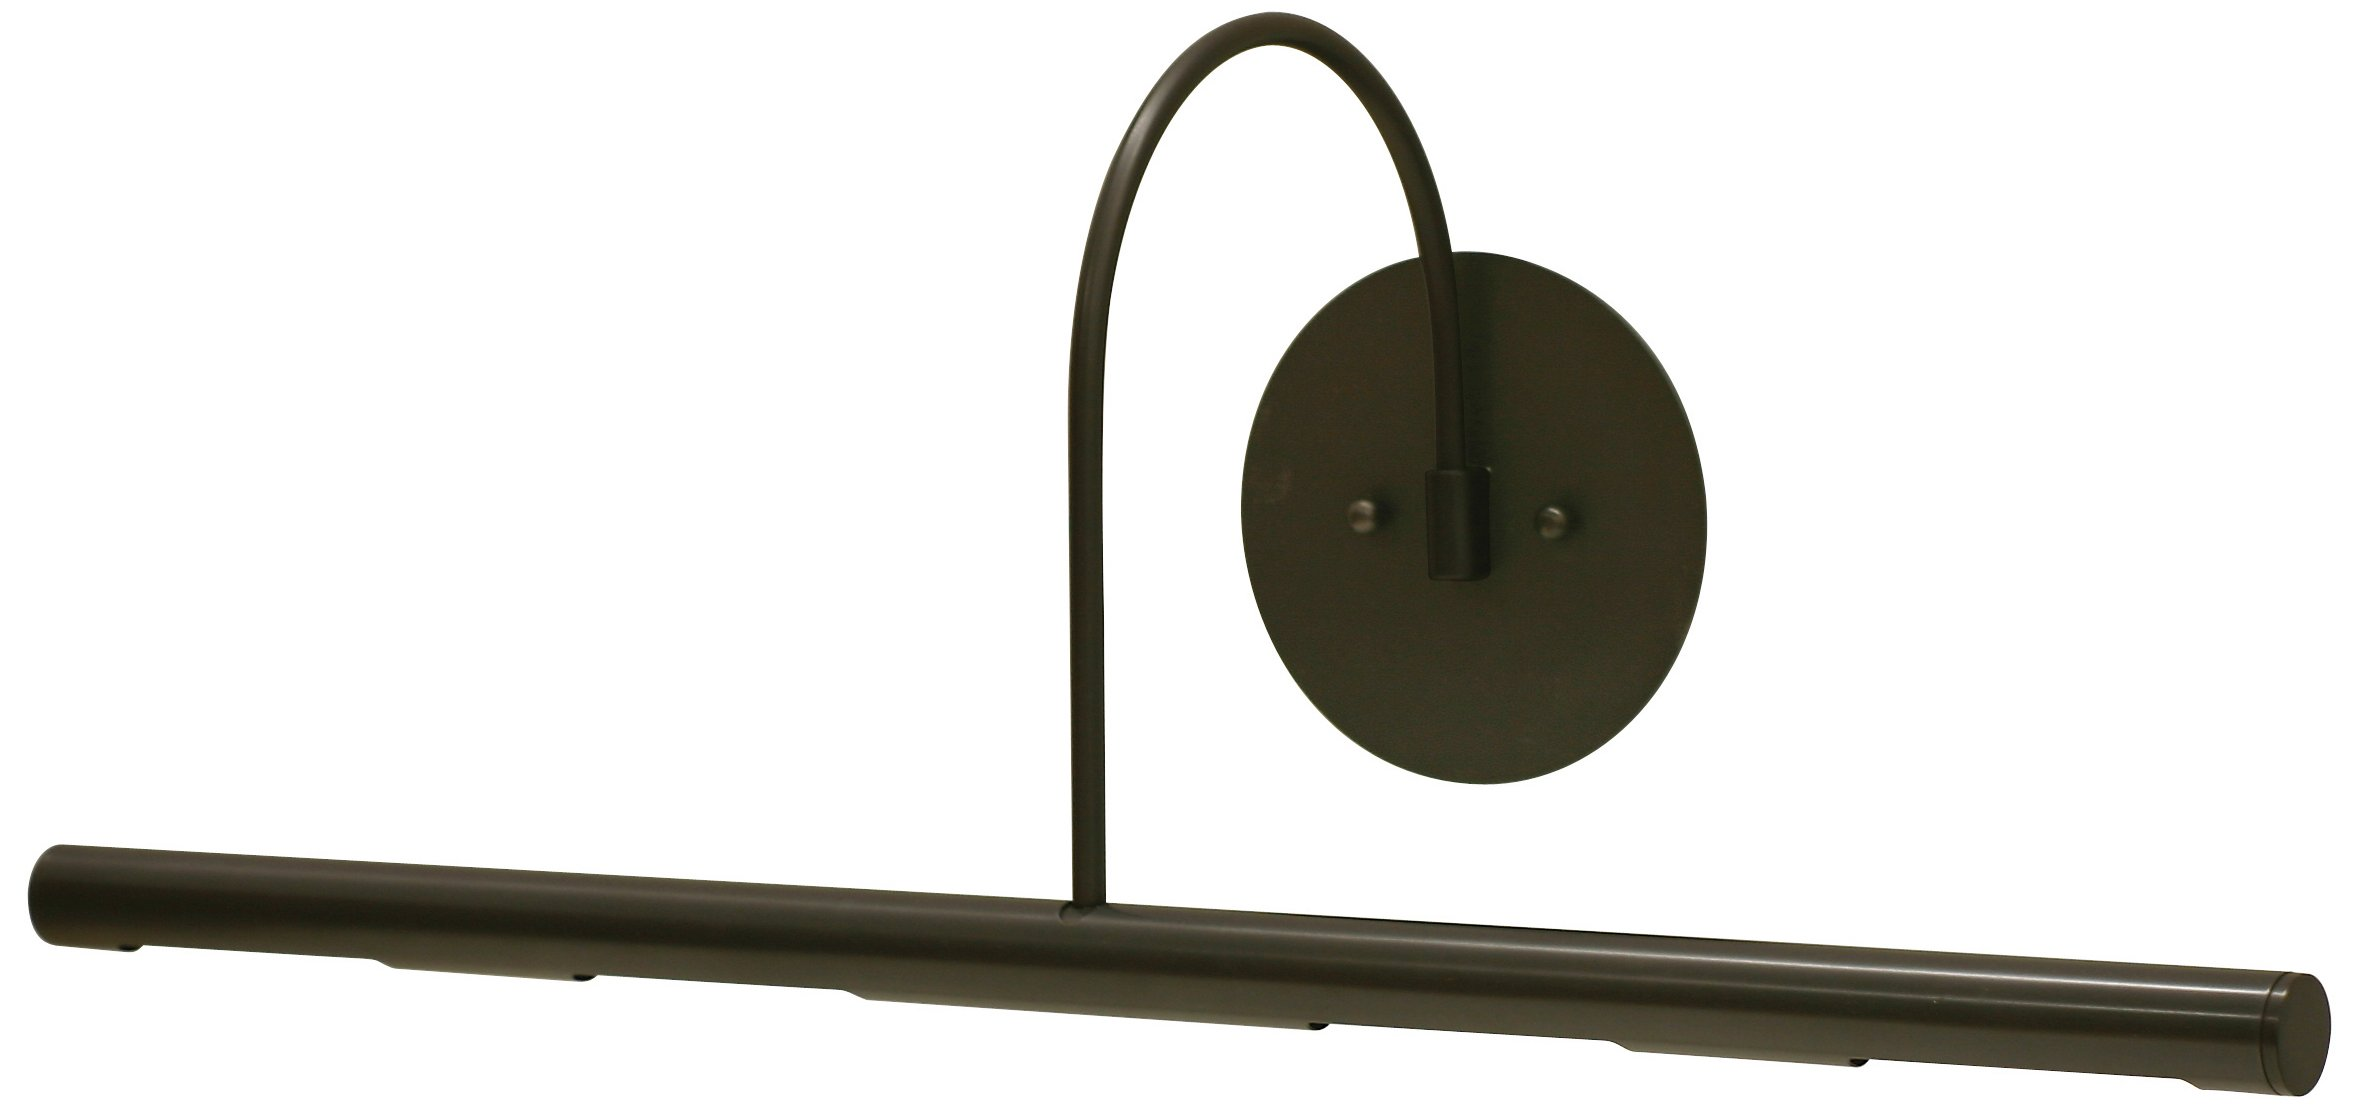 House of Troy DXL14-91 Direct Wire Slim-Line 2LT Picture Light, Oil Rubbed Bronze Finish